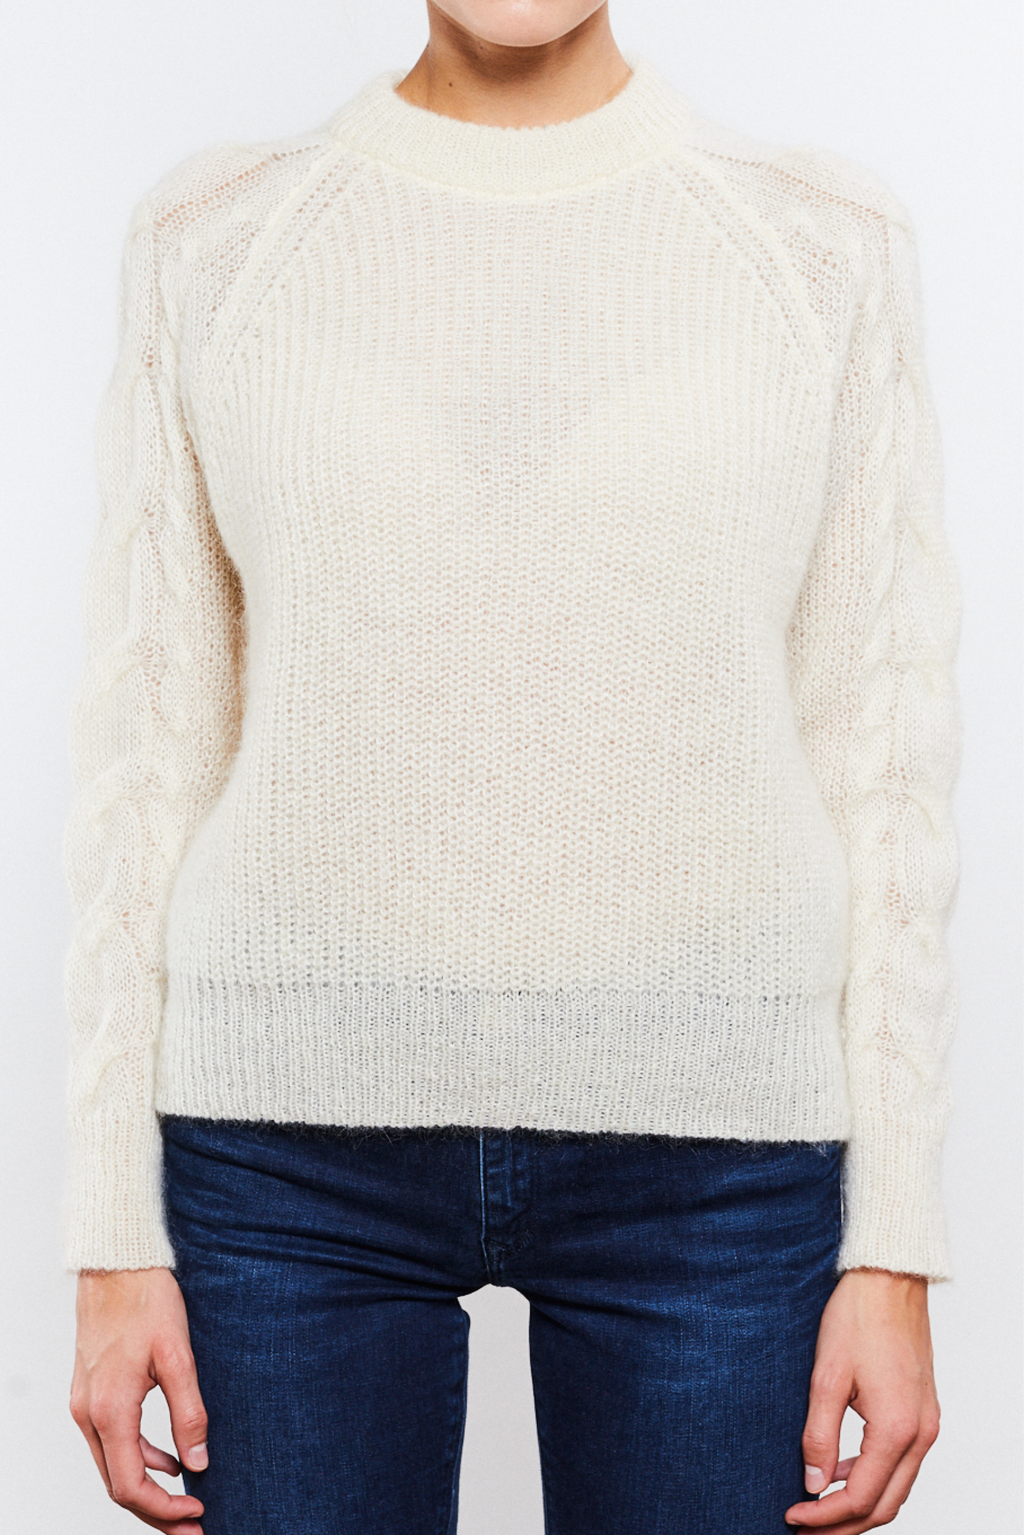 Rachel Sweater White